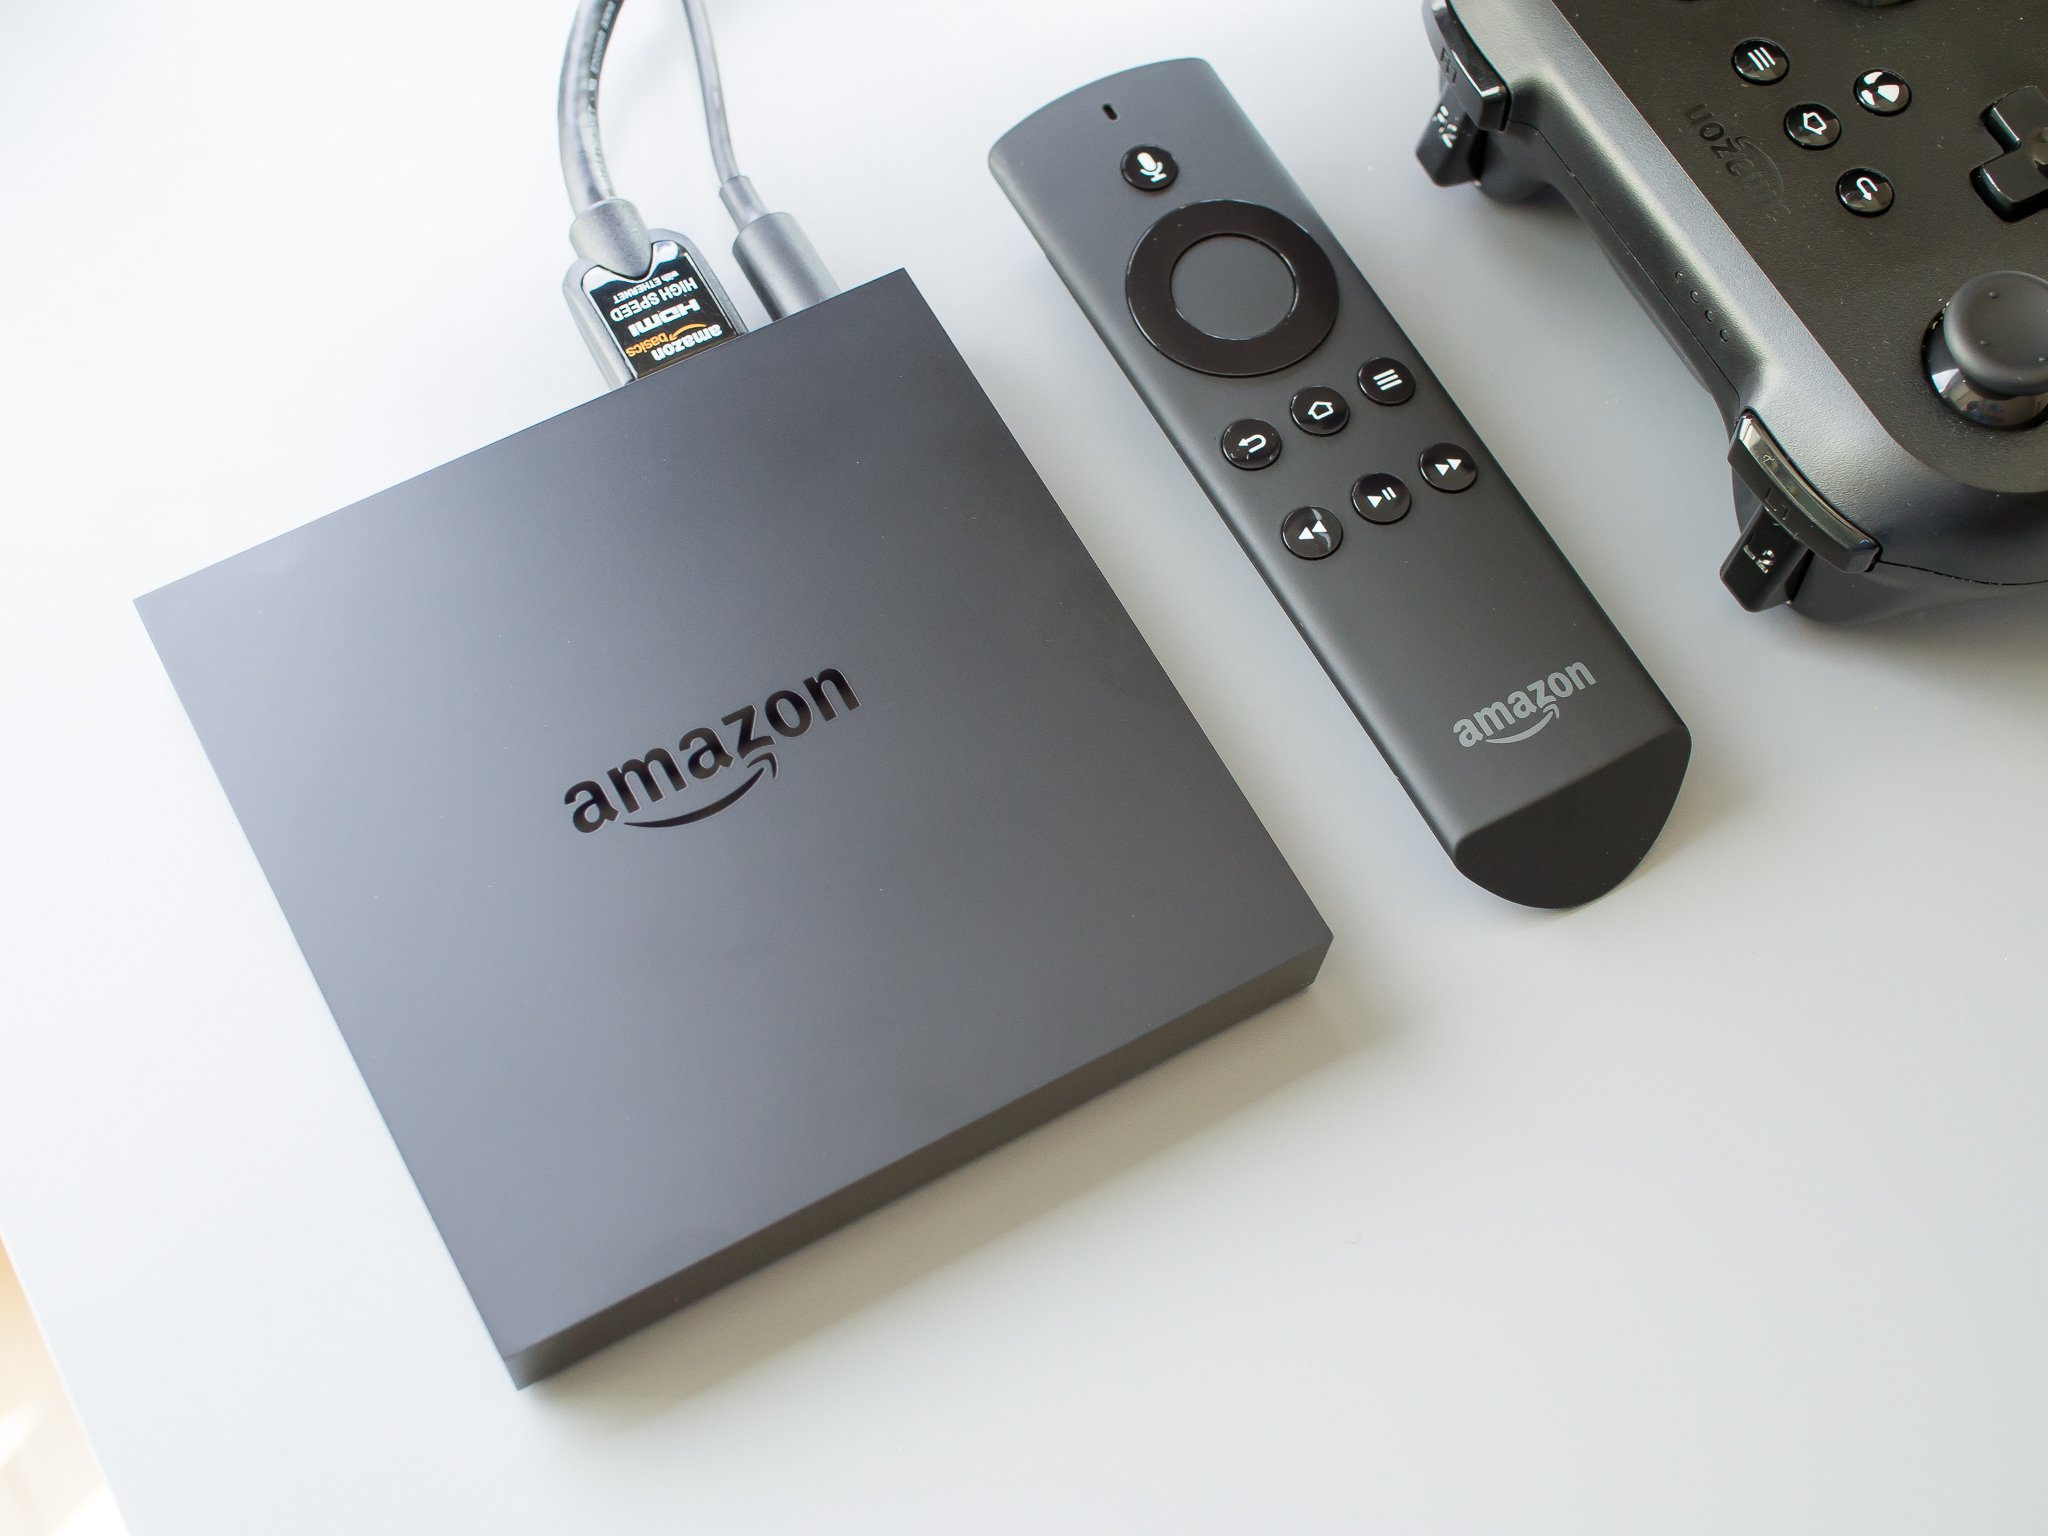 Amazon s new 4k capable fire tv with alexa voice actions now shipping